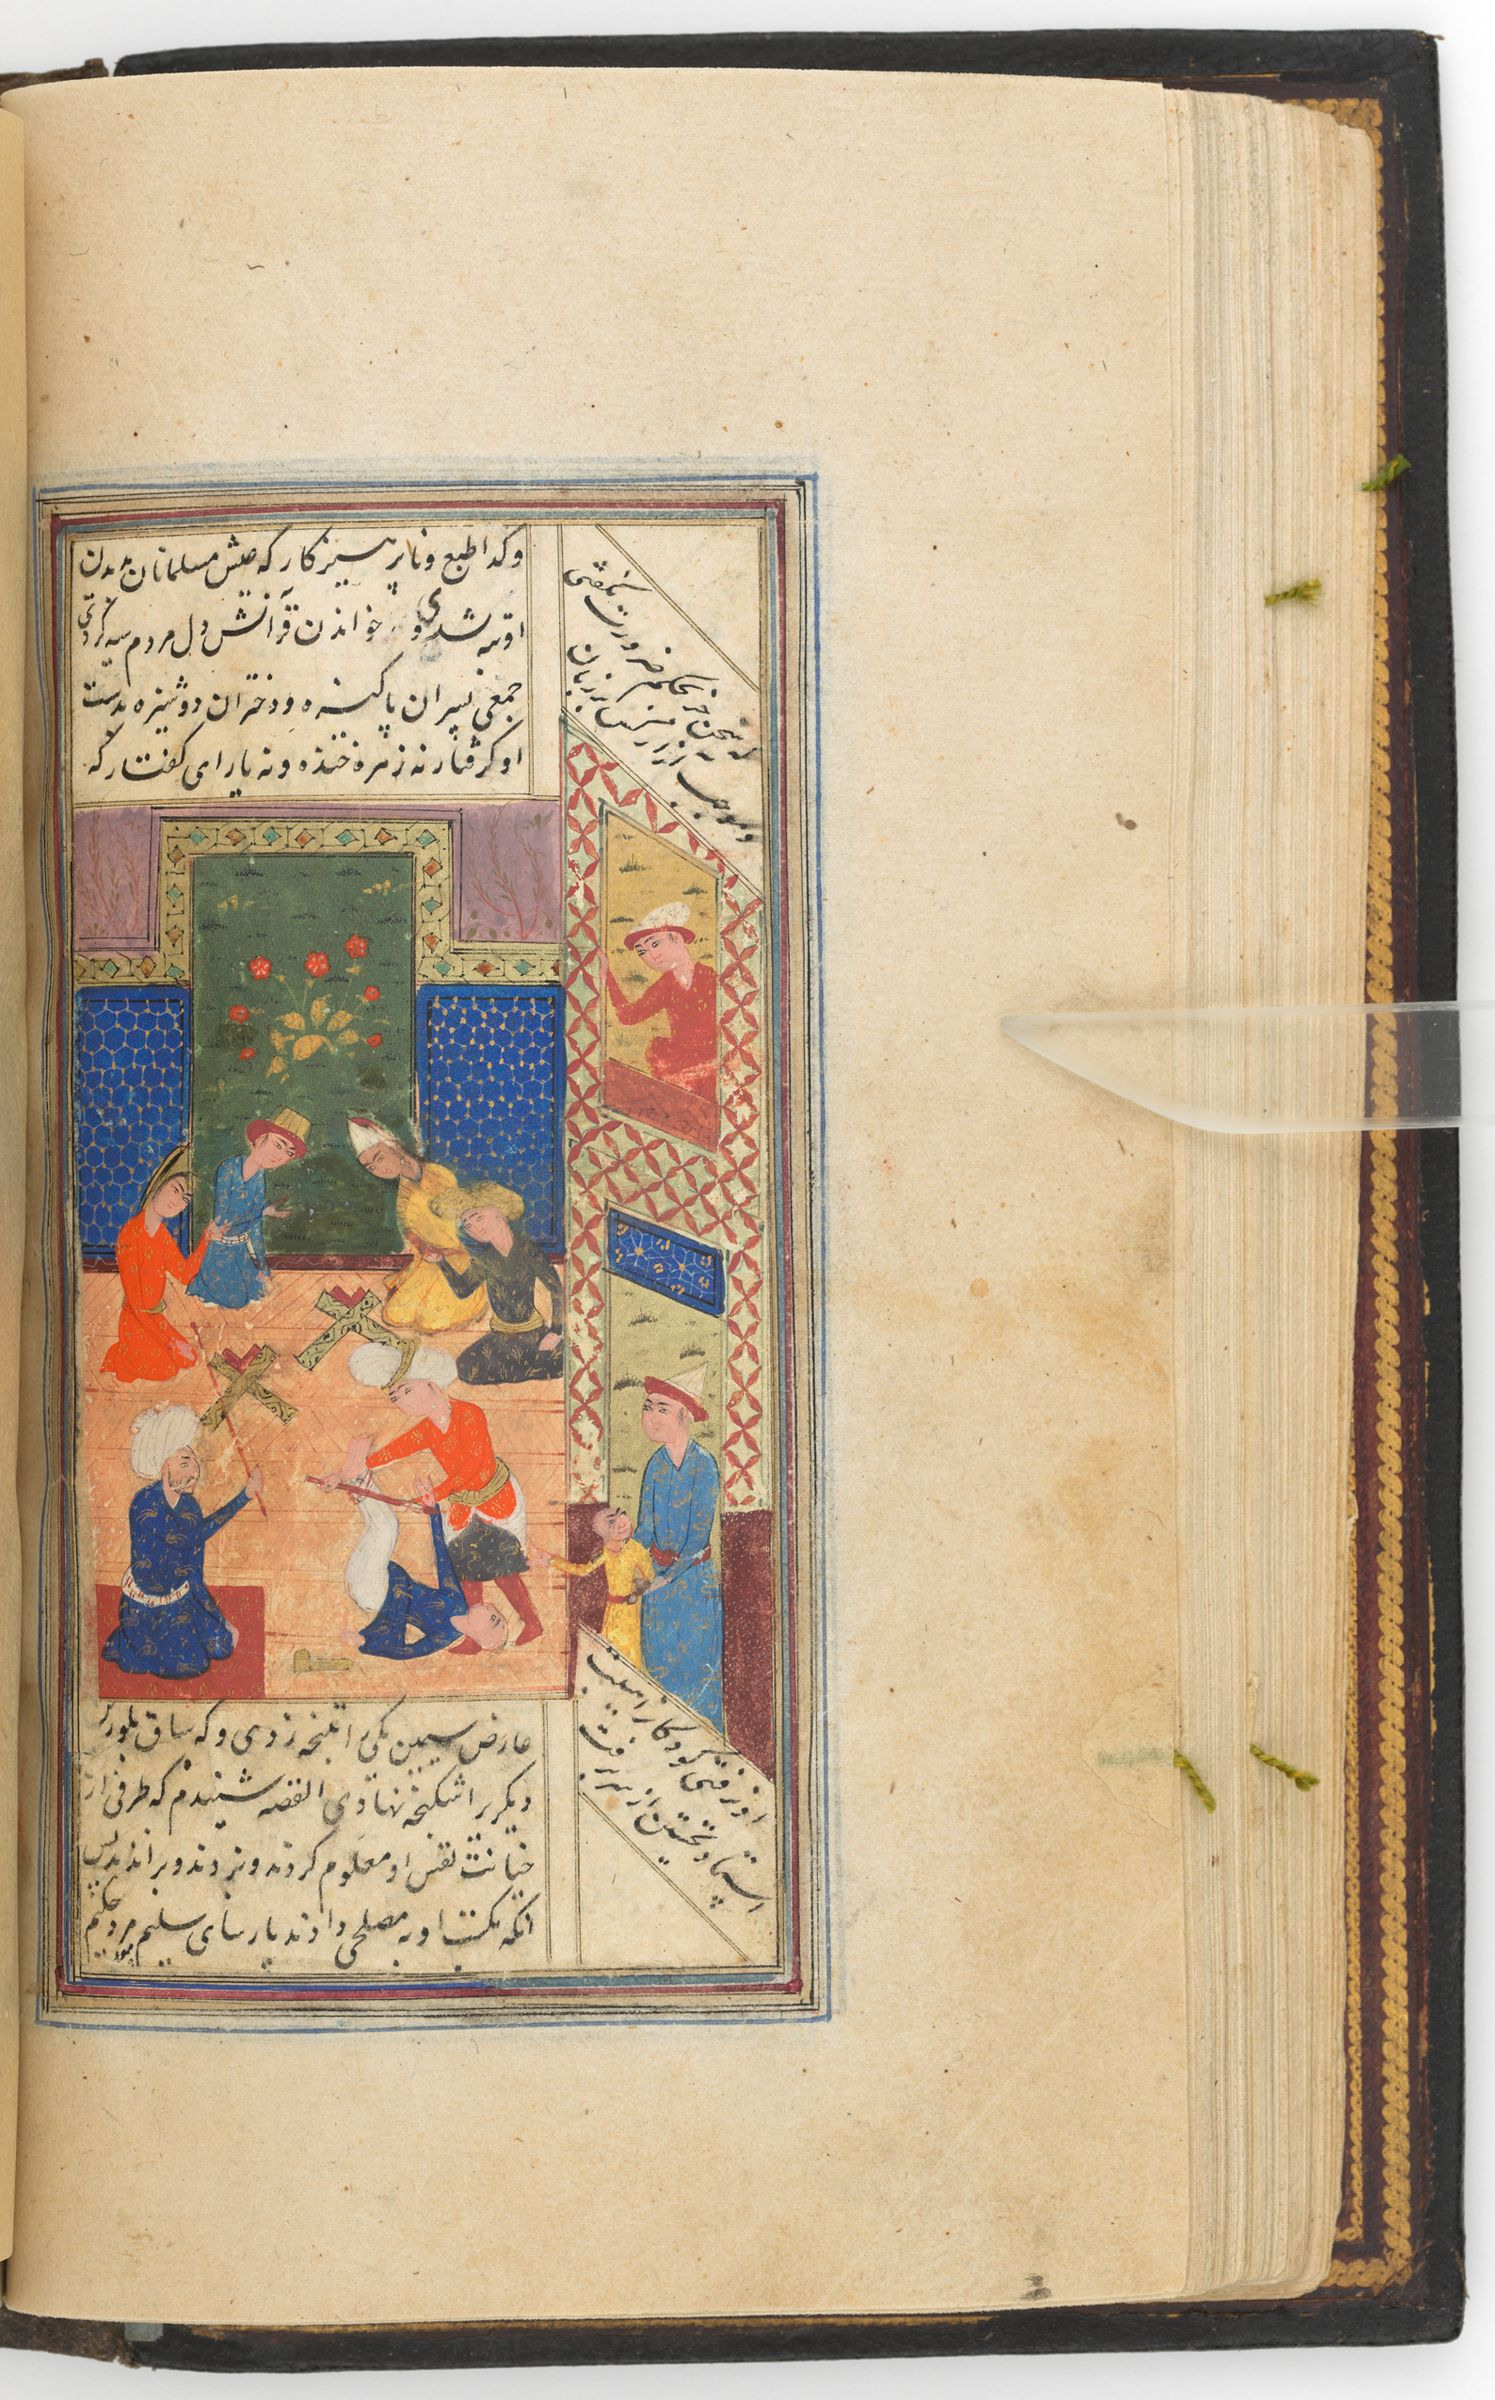 The Mean Teacher Who Beat Children At School (Text Recto; Painting Verso Of Folio 64), Painting From A Manuscript Of The Kulliyat Of Sa'di